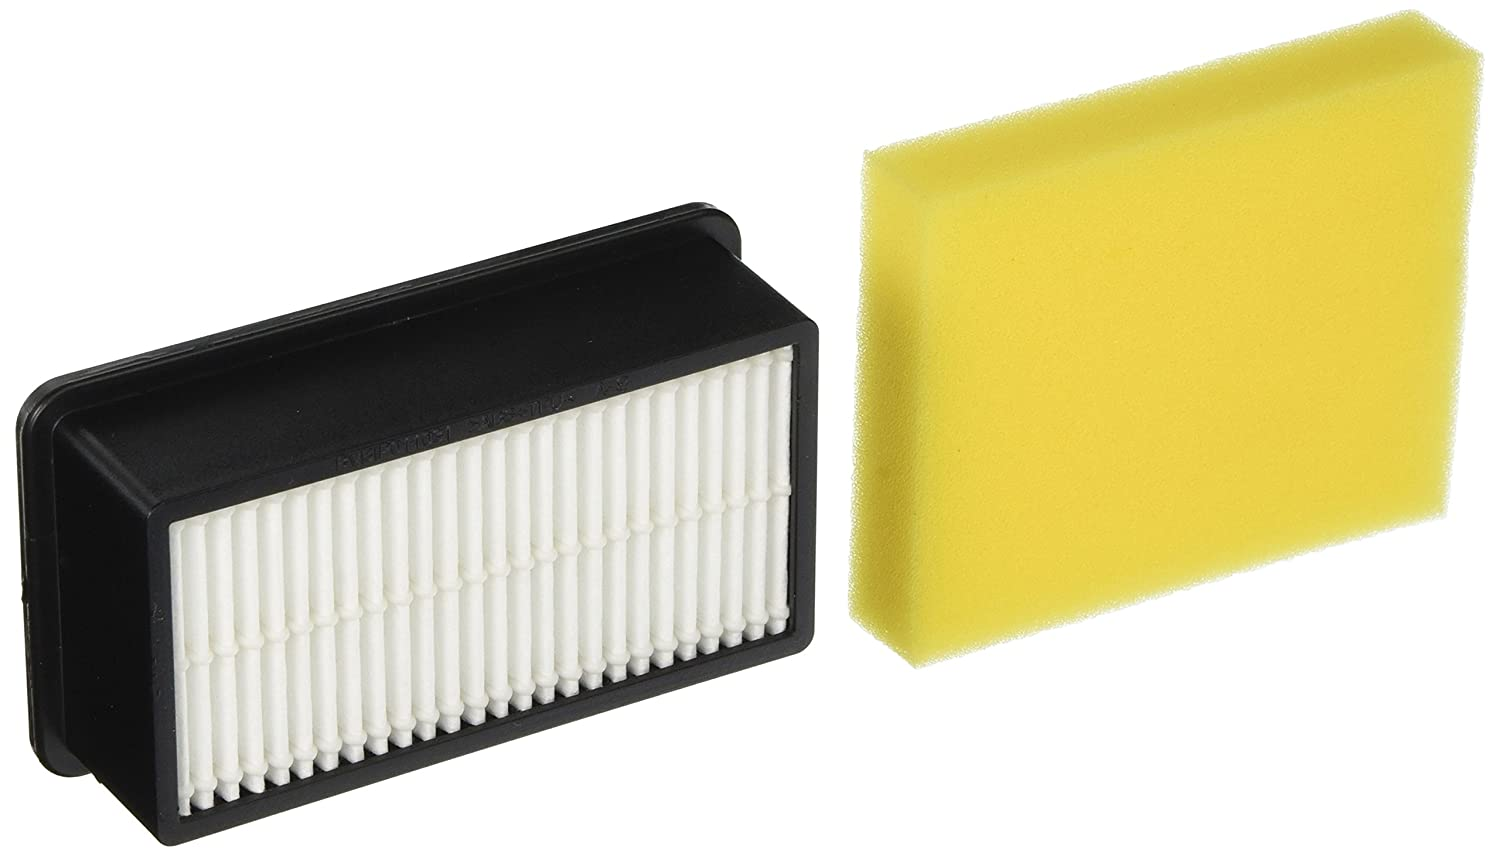 Bissell 1008 Filter Pack (1 Pre-Motor and 1 Post Motor Filter)